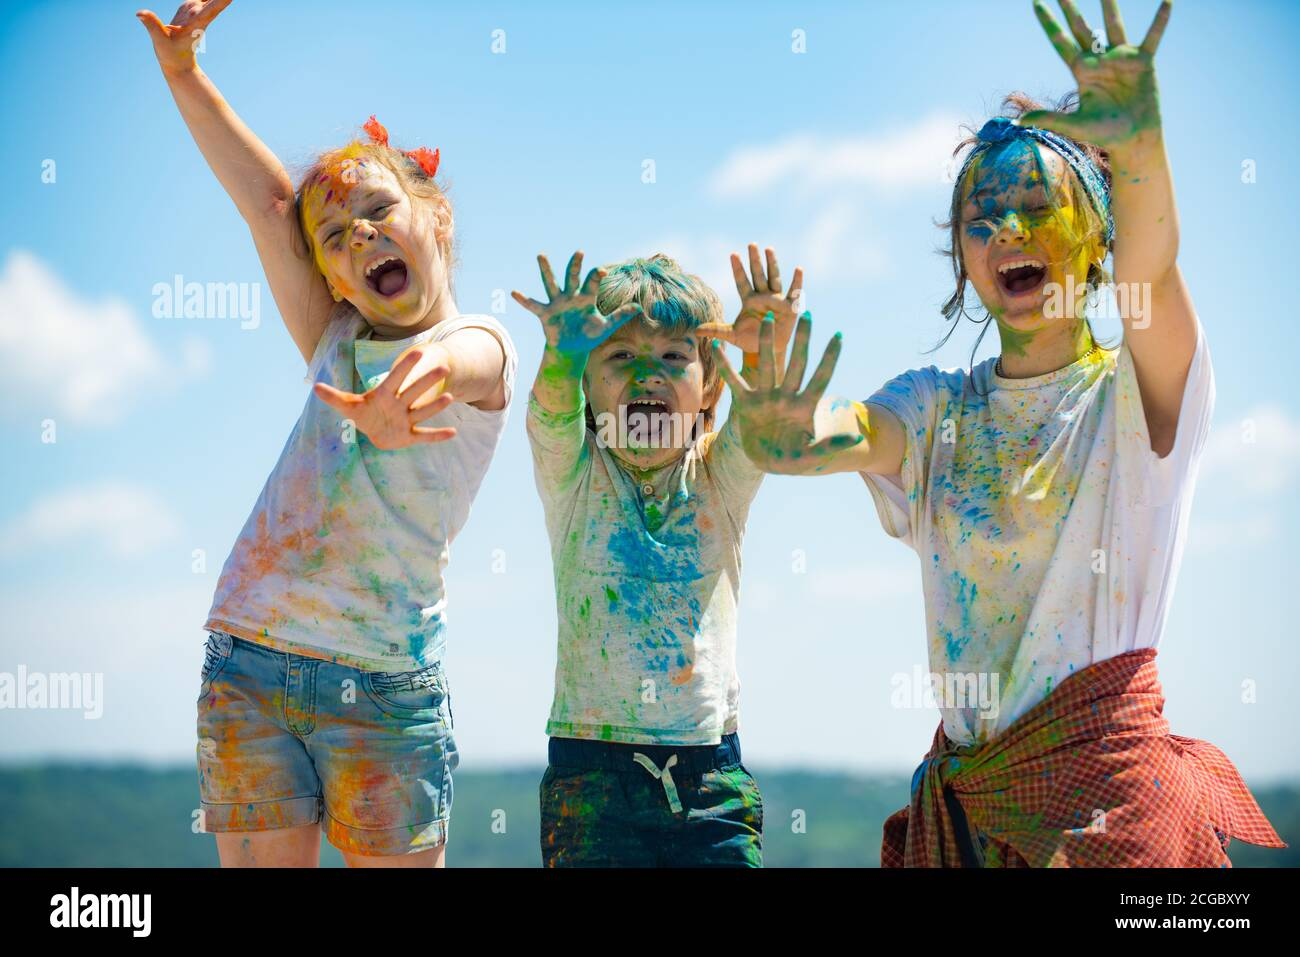 Portrait of a beautiful kids showing colorful colored hands. Happy childhood. Emotional cheerful excited children. Stock Photo